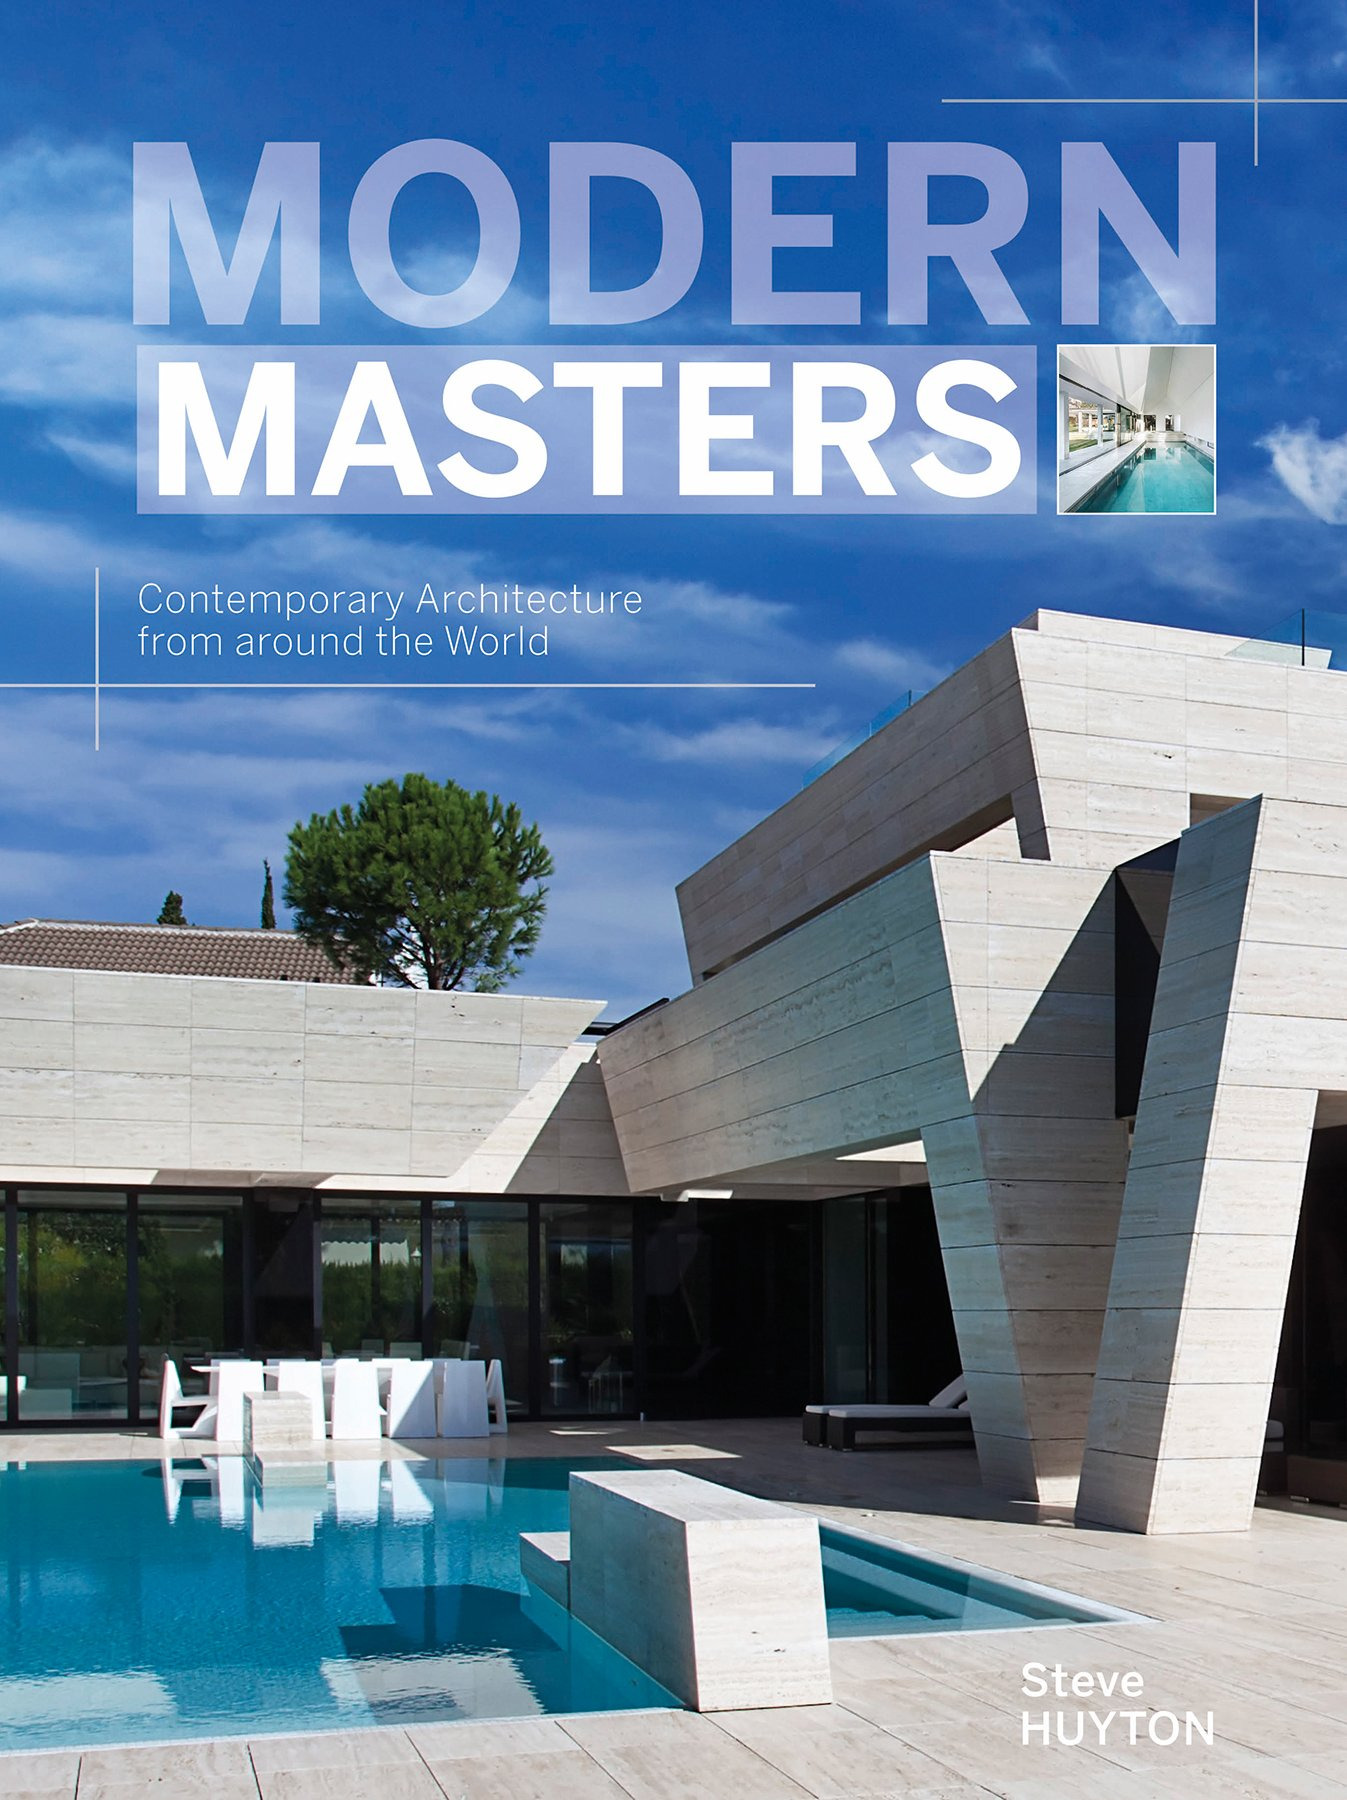 Modern Contemporary Architecture Homes Luxury Modern Masters Contemporary Architecture From Around the